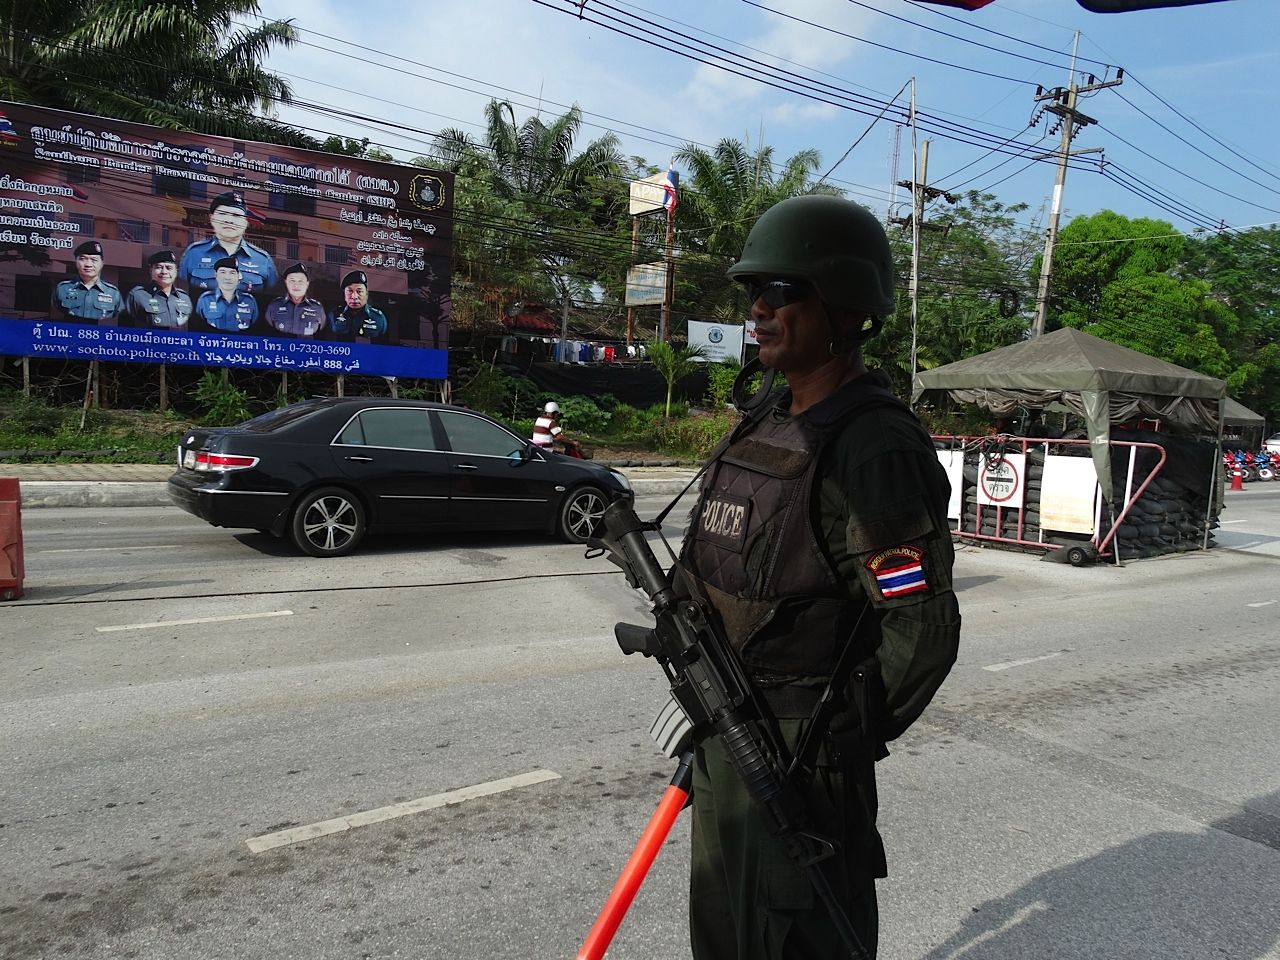 Thailand's Deep South: Living in Conflict